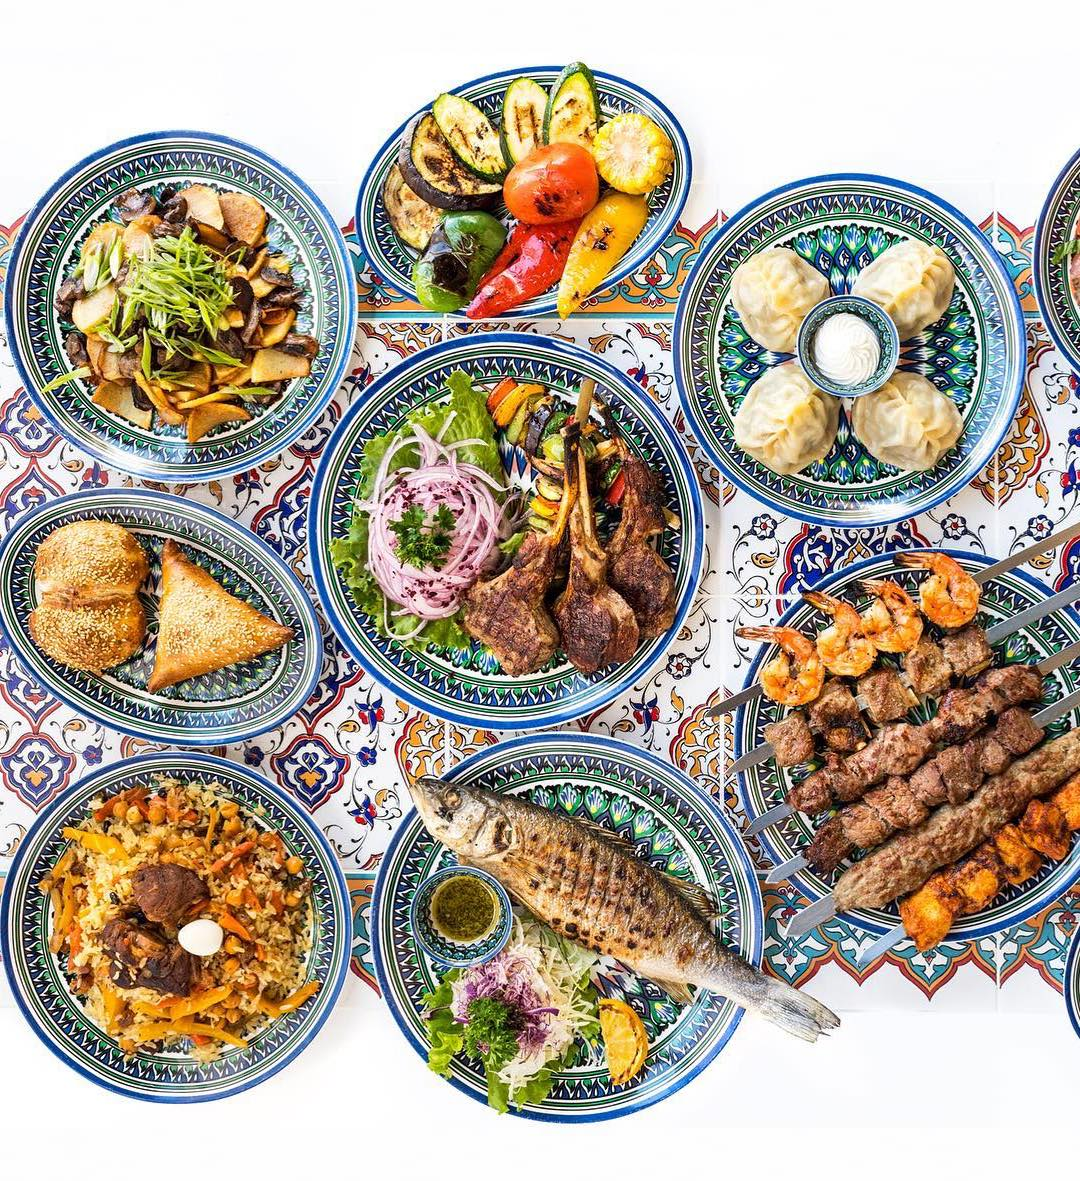 Spread of different dishes from Chayhana Oasis